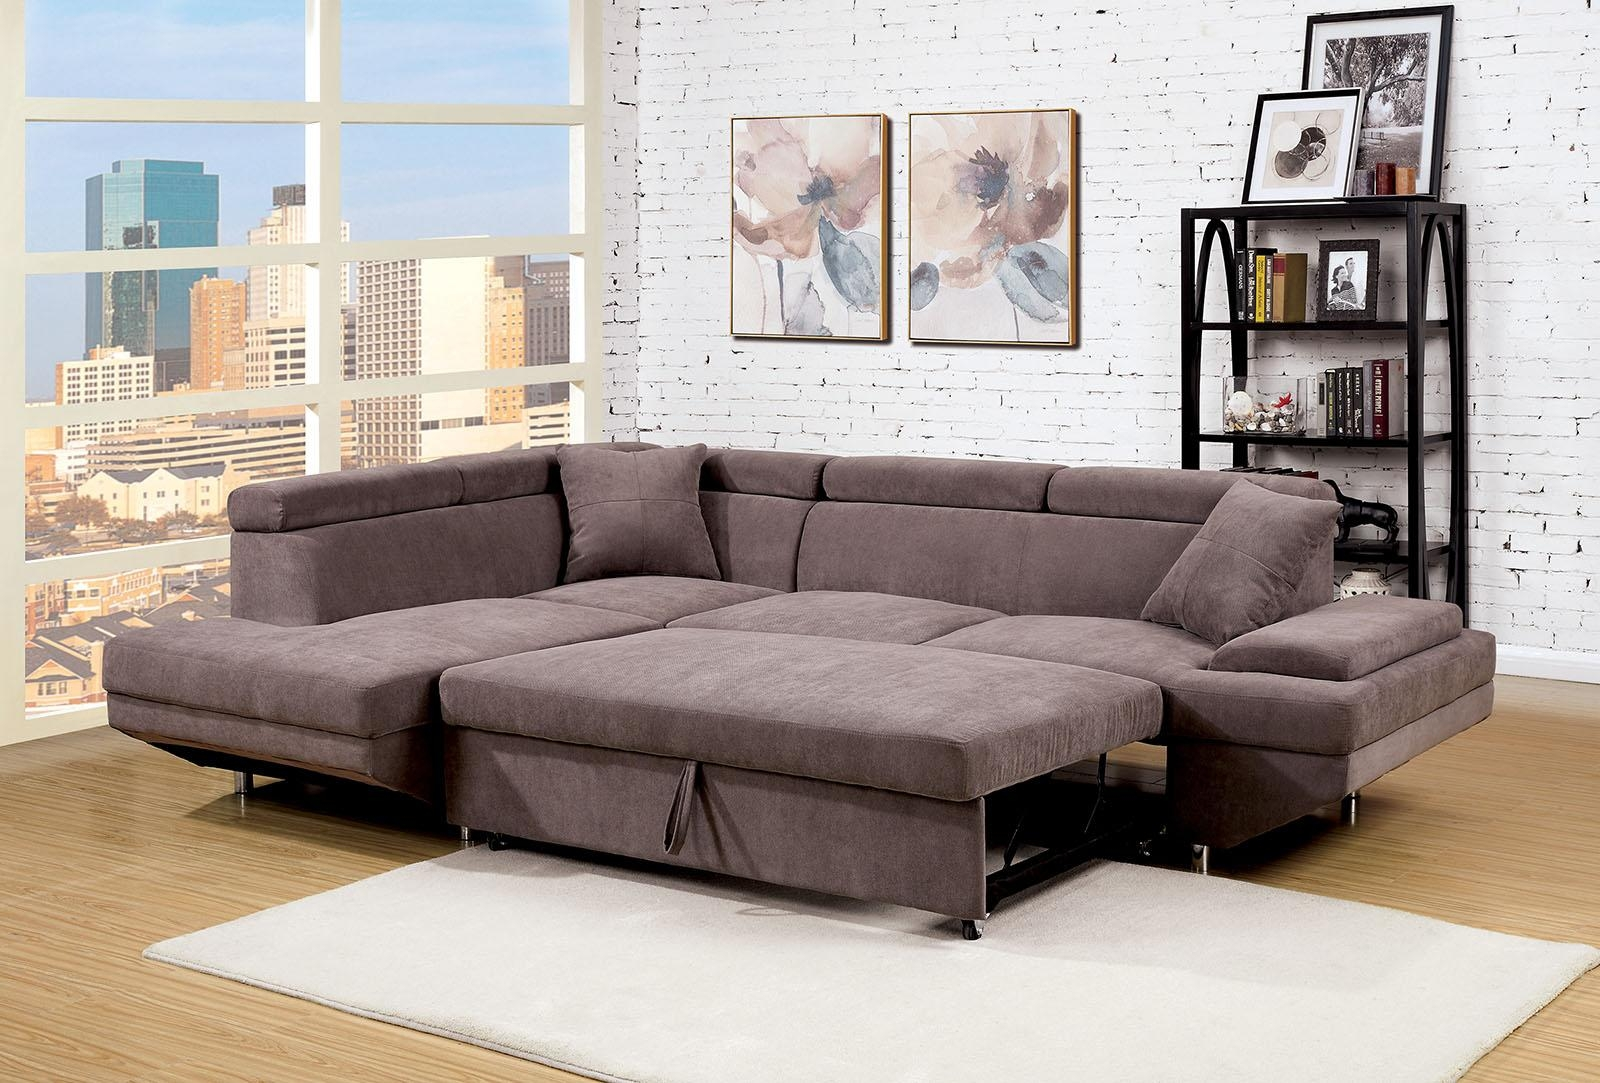 Foreman Contemporary Style Brown Flannelette Fabric Pull Out Inside Pull Out Sectional (Image 11 of 20)